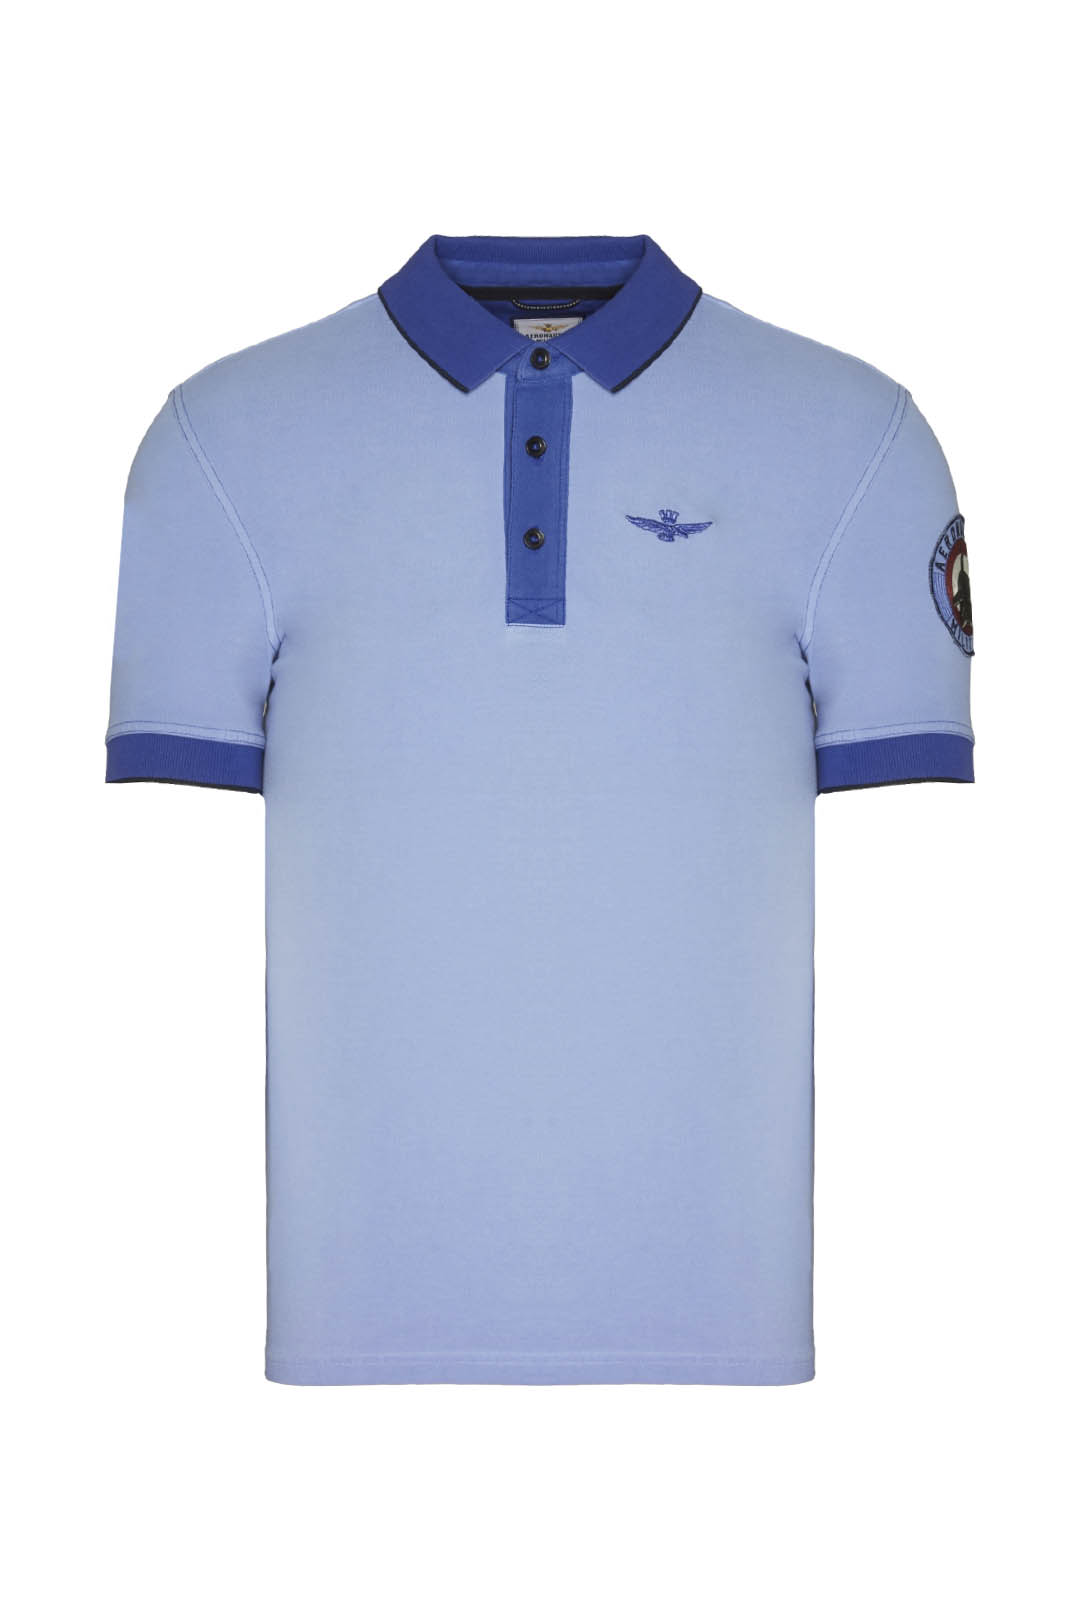 102nd Wing short-sleeved polo shirt      1